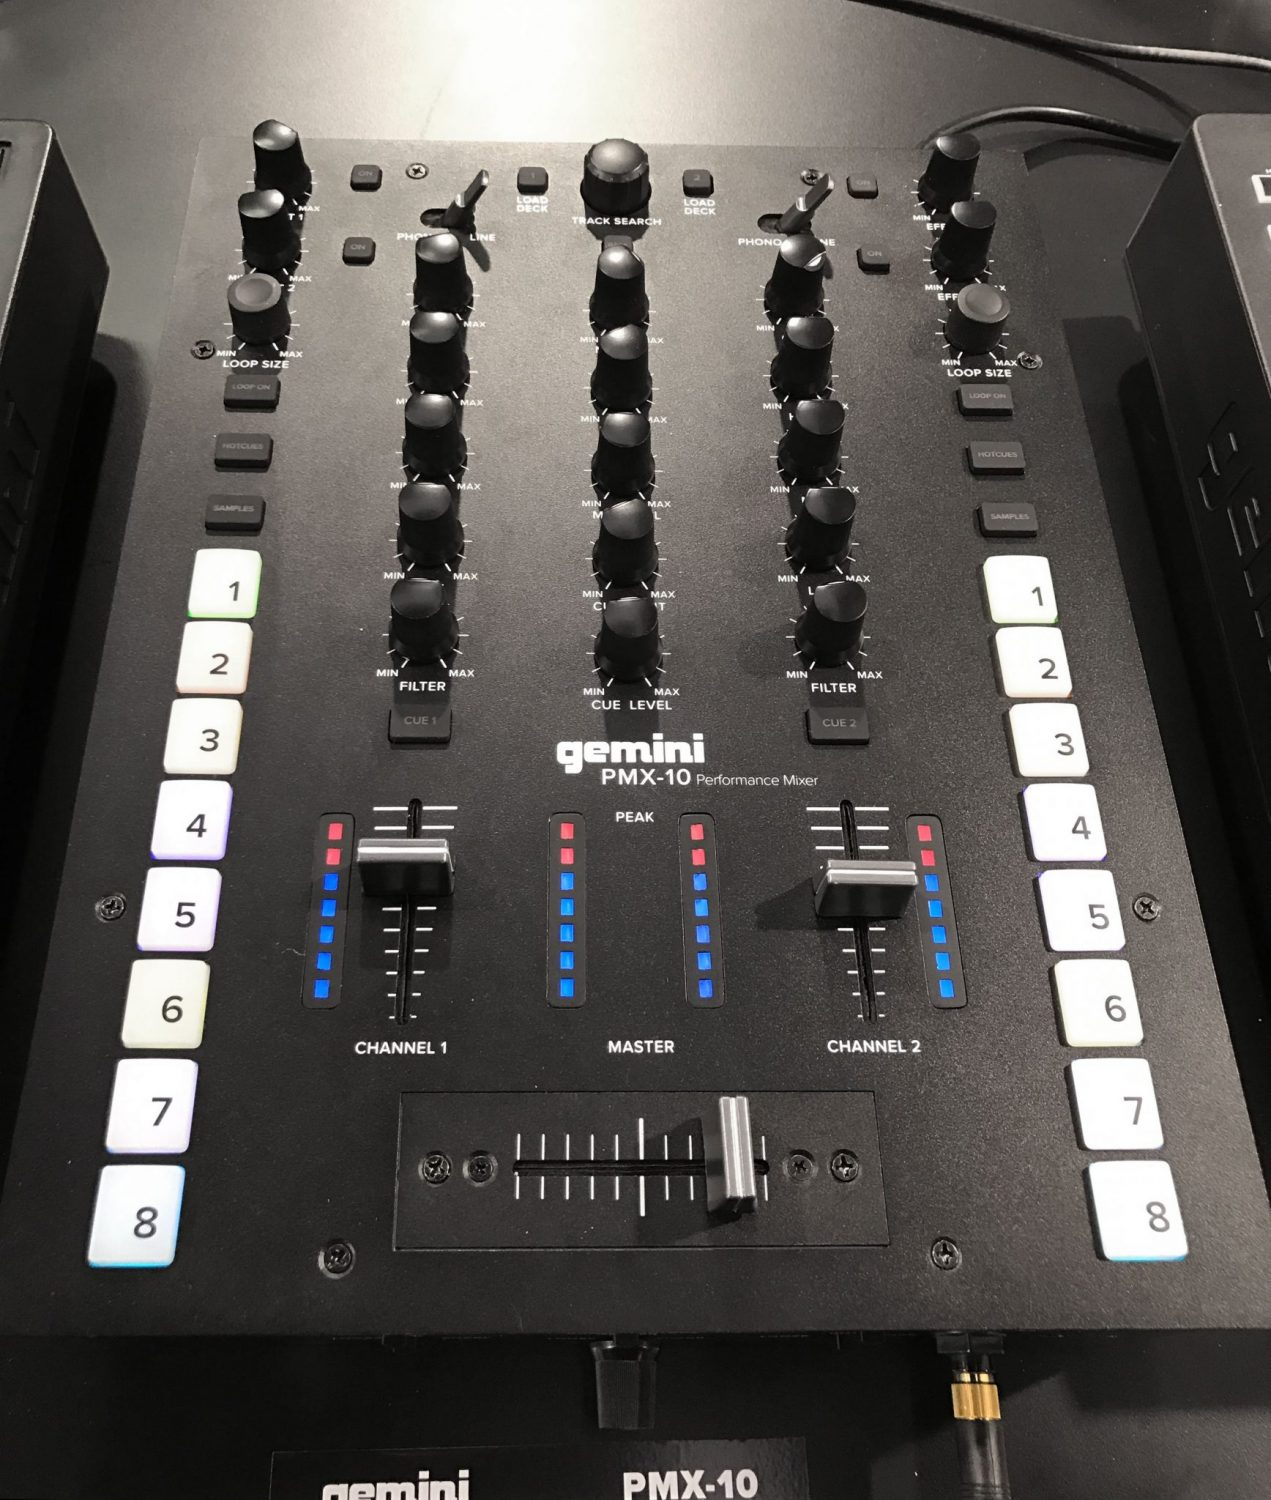 NAMM 2017: Gemini PMX-10 and PMX-20 MIDI Mixers 1